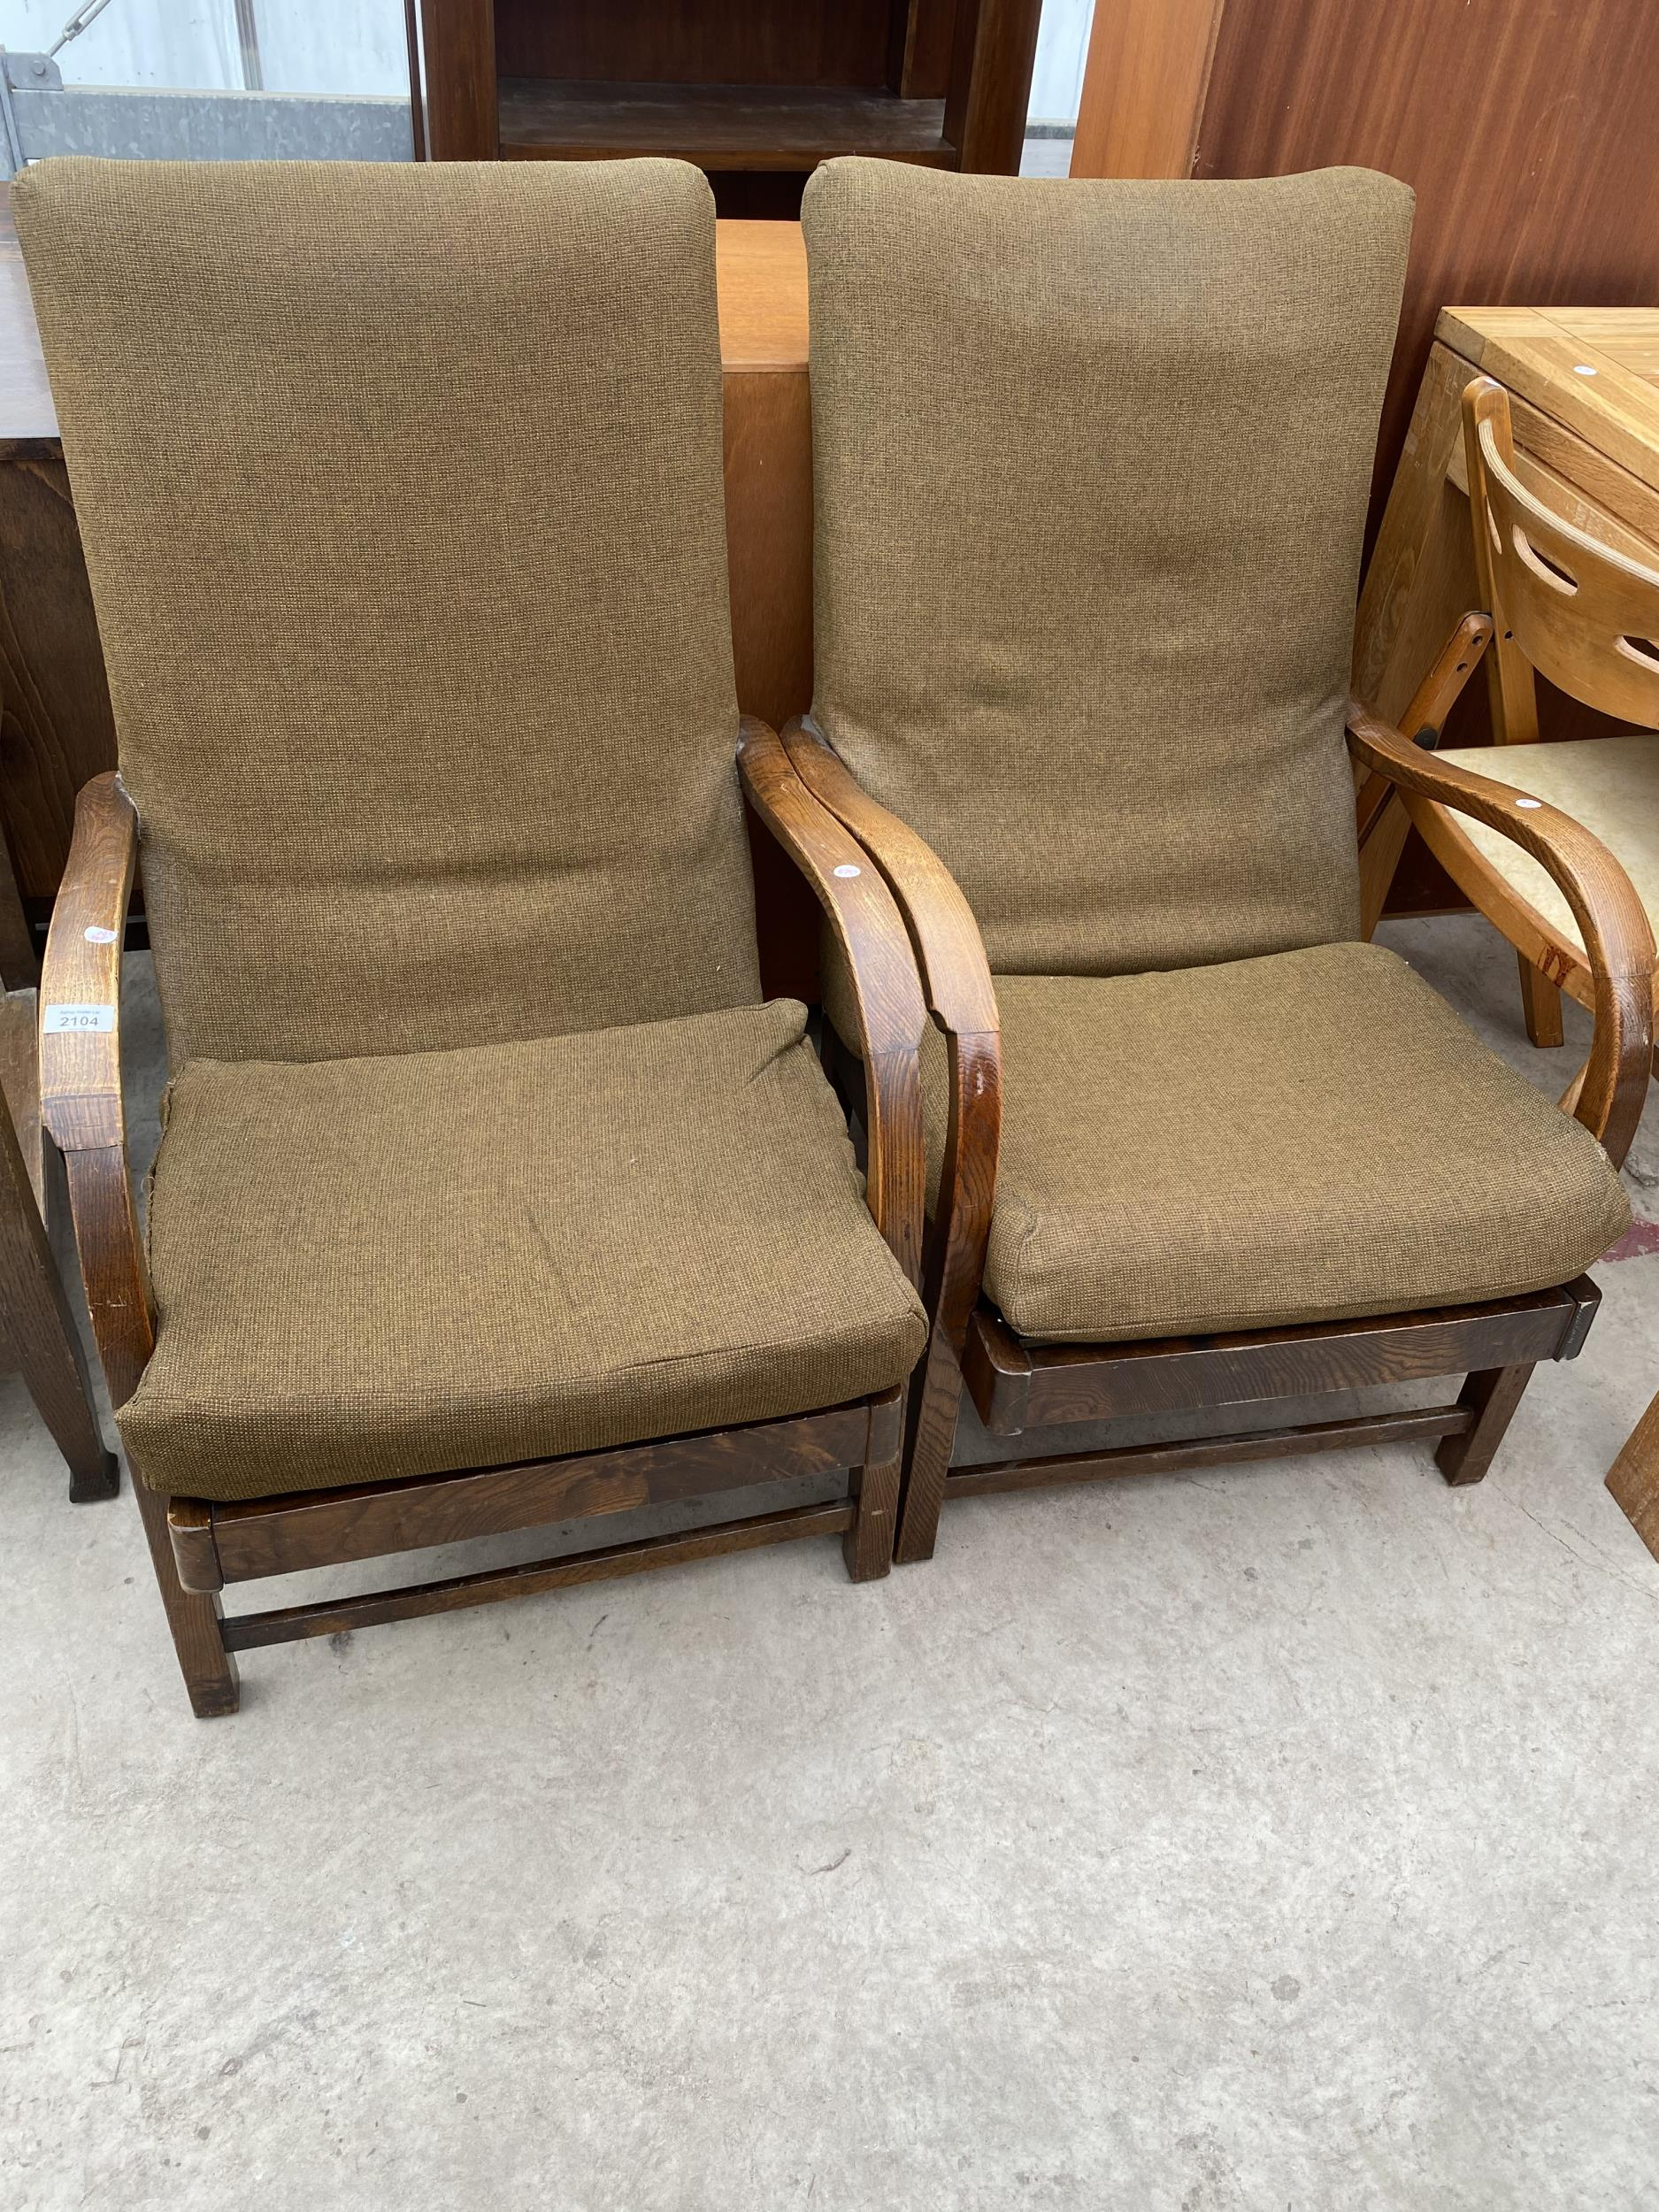 A PAIR OF ART DECO STYLE FIRESIDE CHAIRS - Image 4 of 4